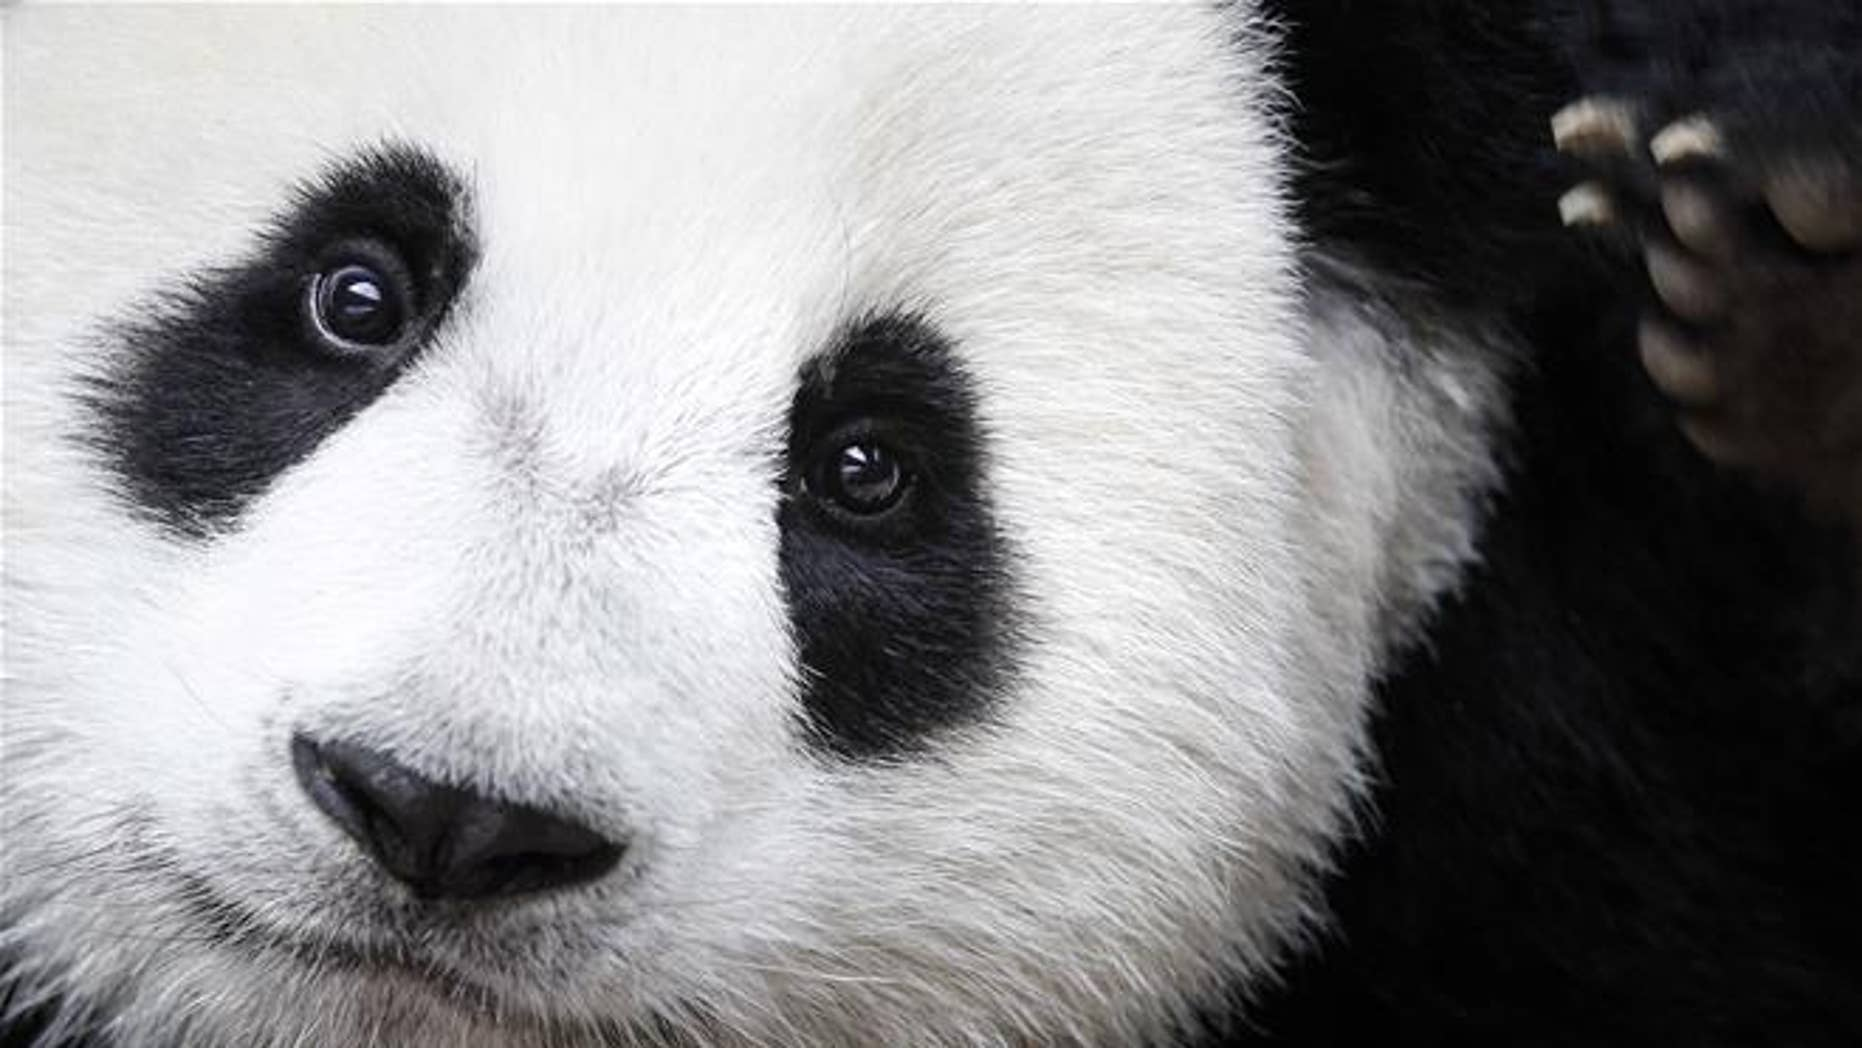 Nuan Nuan is shown at the Giant Panda Conservation Center in Kuala Lumpur, Malaysia.